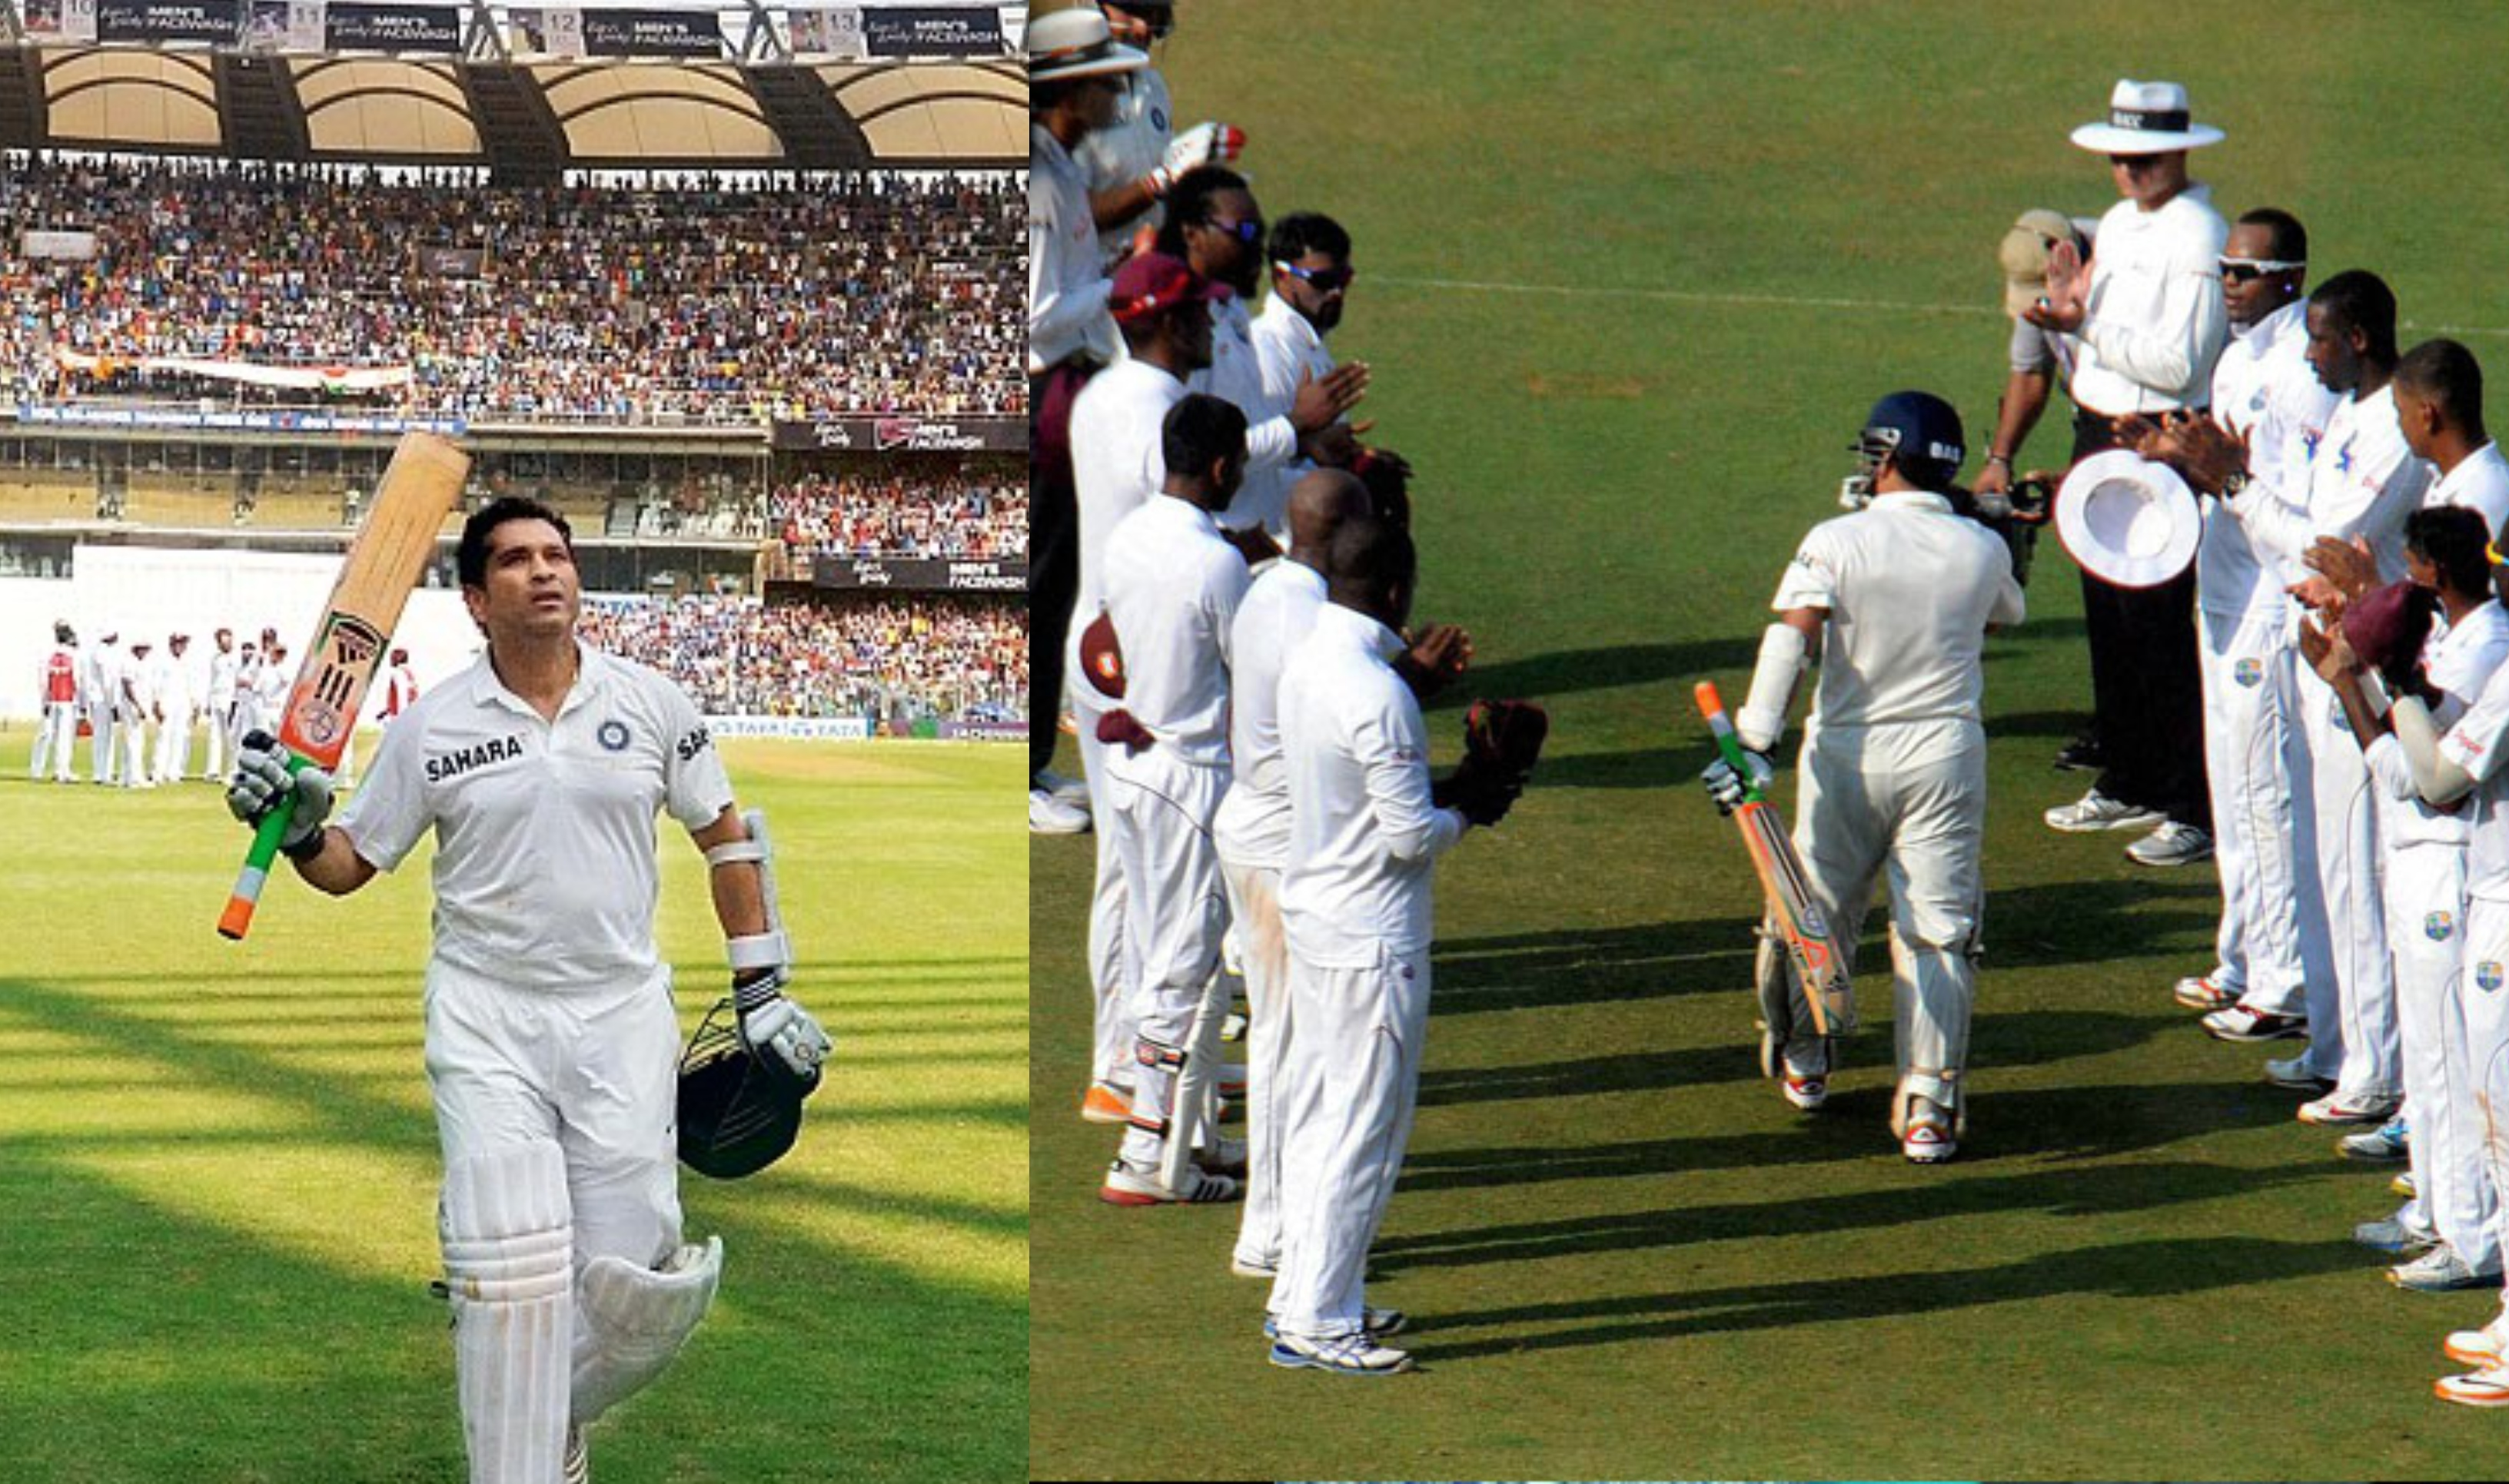 West Indies players paid respect to Tendulkar on his final 200th Test in Mumbai | AFP